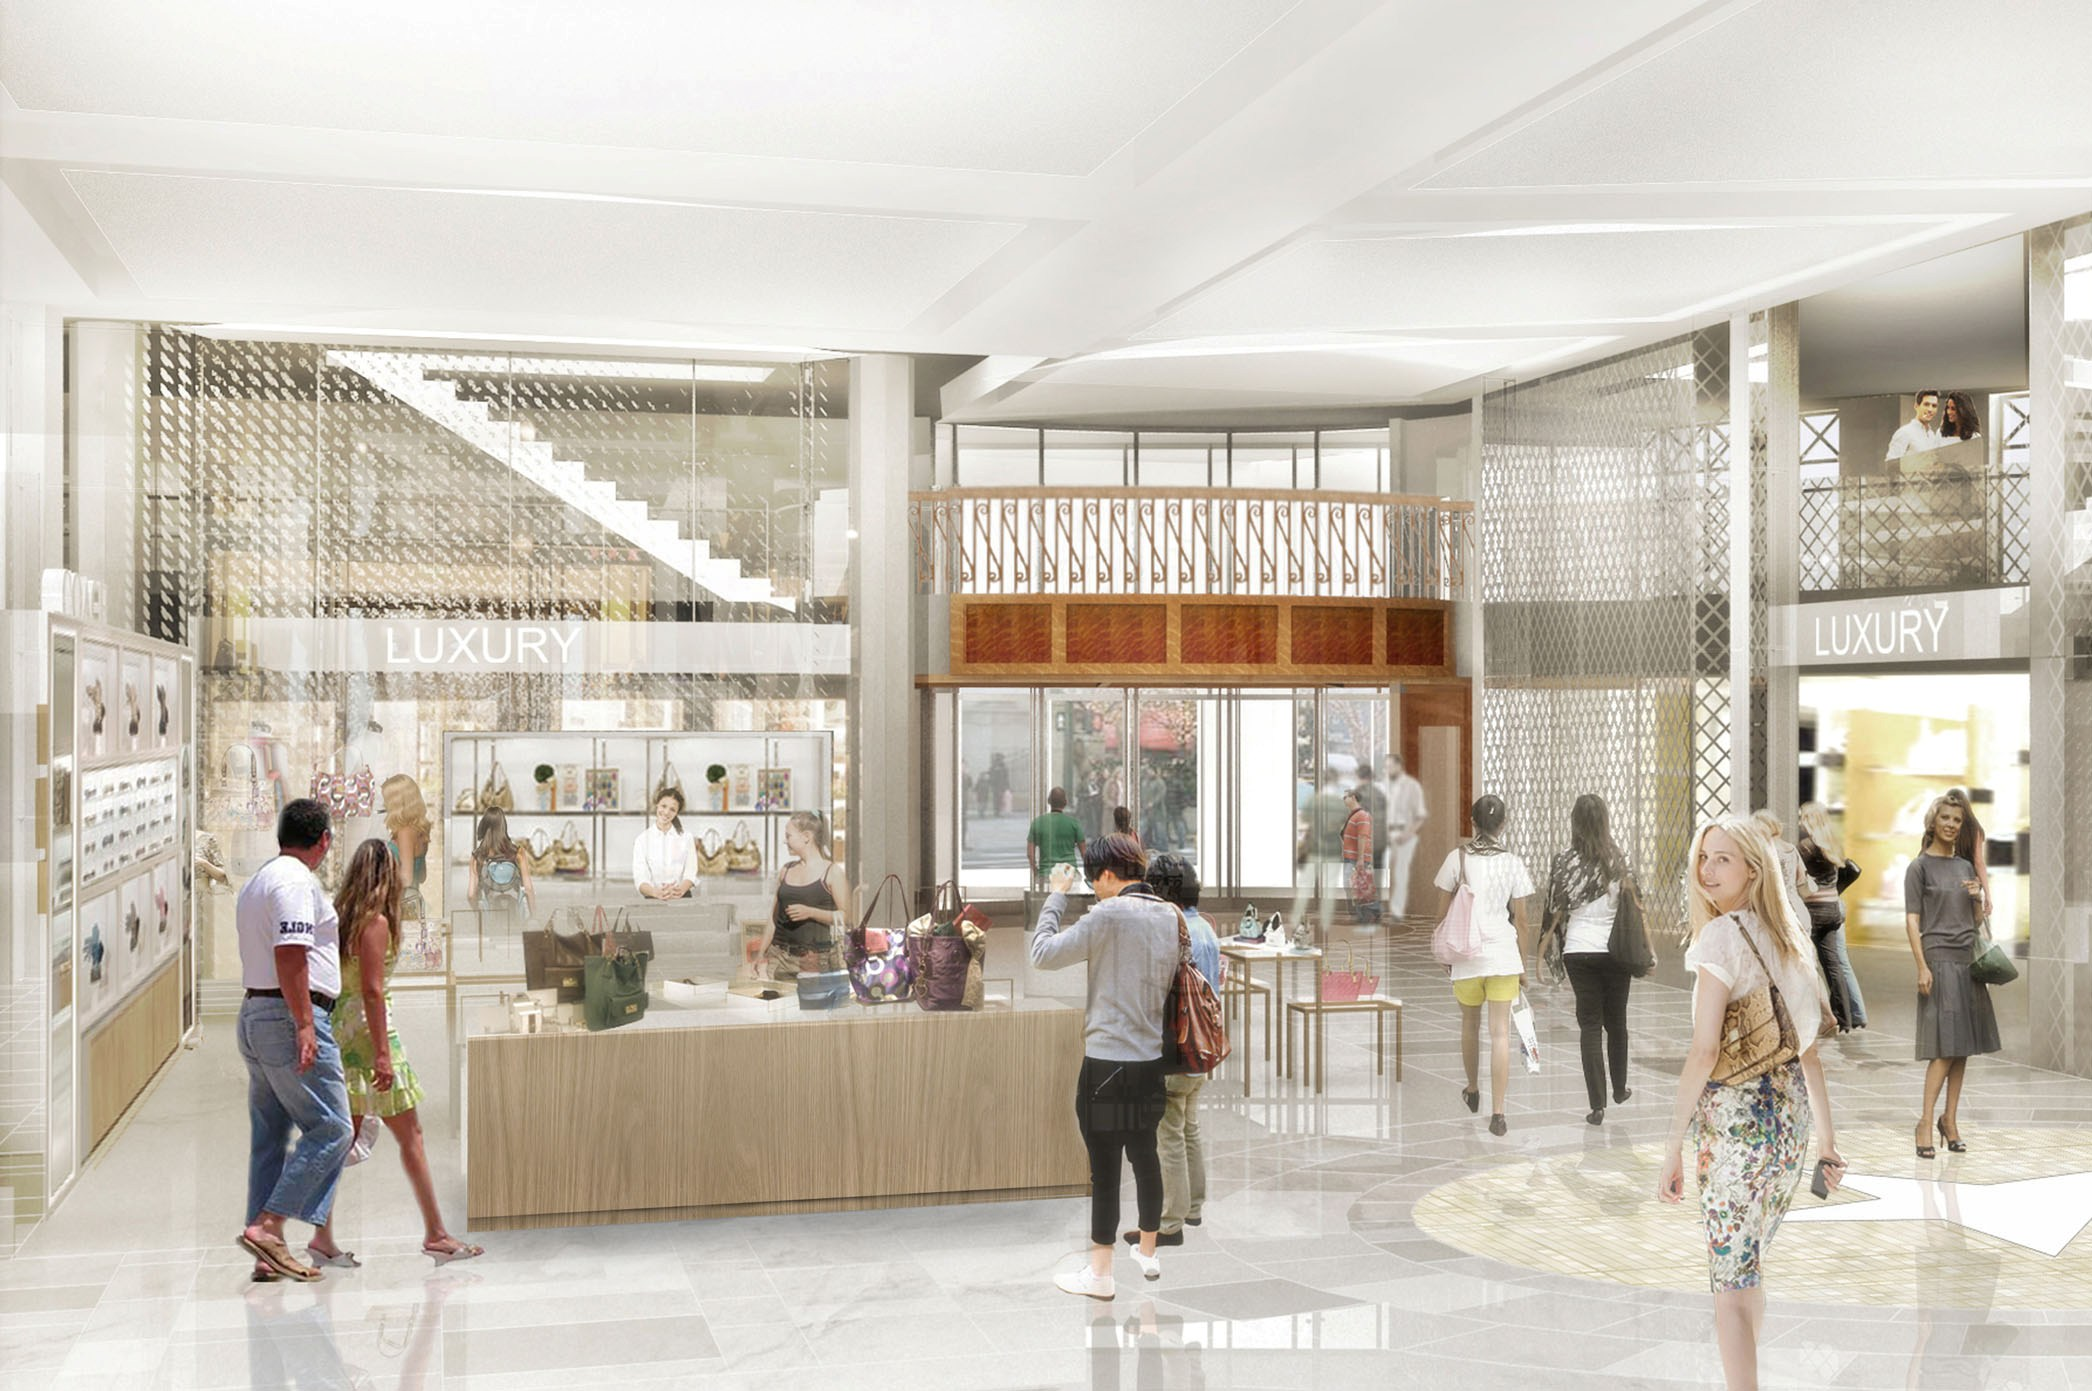 Rendering of people shopping in Macy's Herald Square, New York. MEP design services by 2L Engineering.